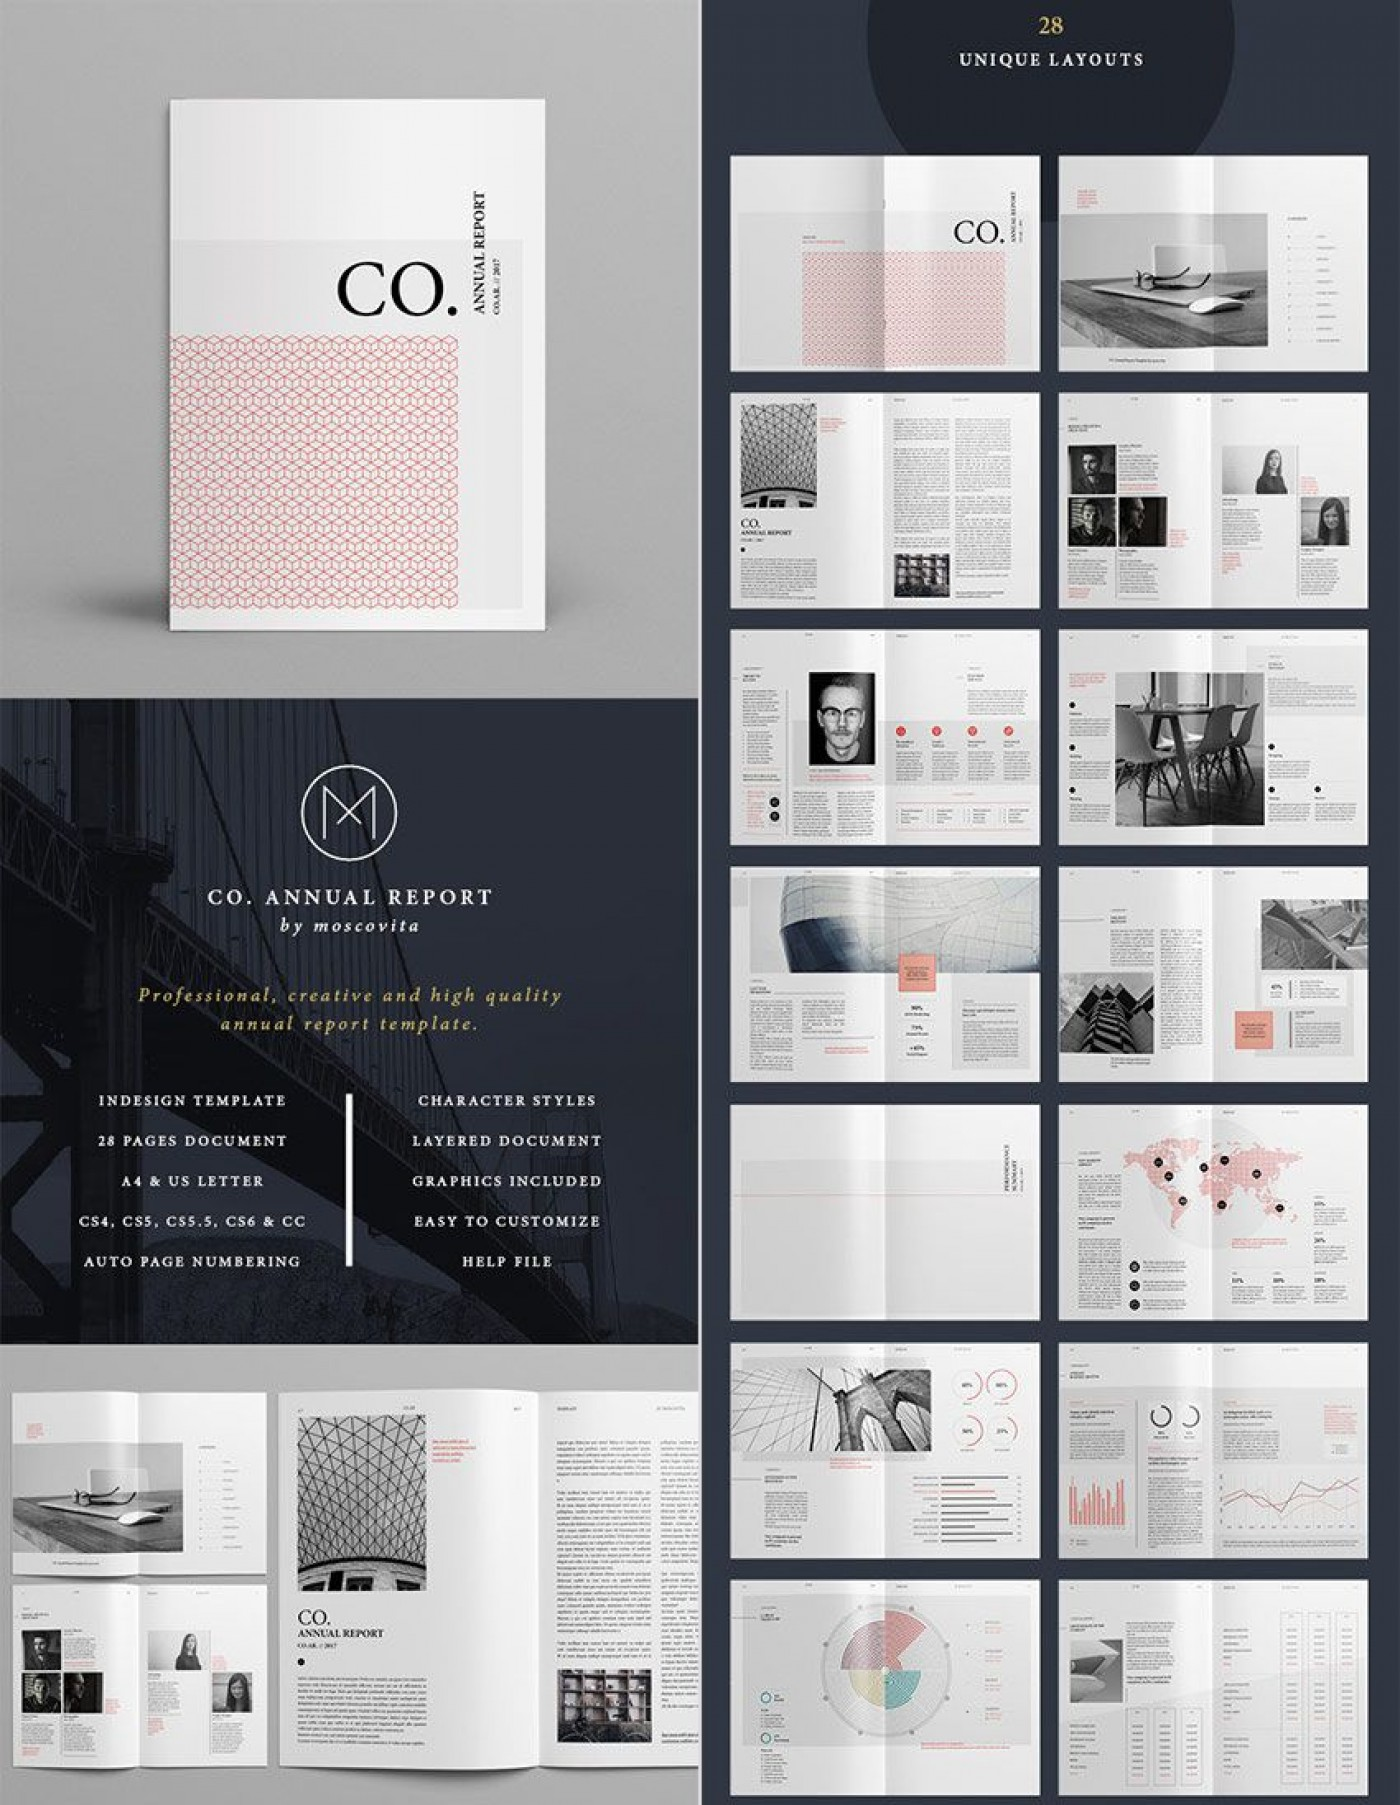 007 Fascinating Annual Report Design Template Indesign Highest Clarity  Free Download1400